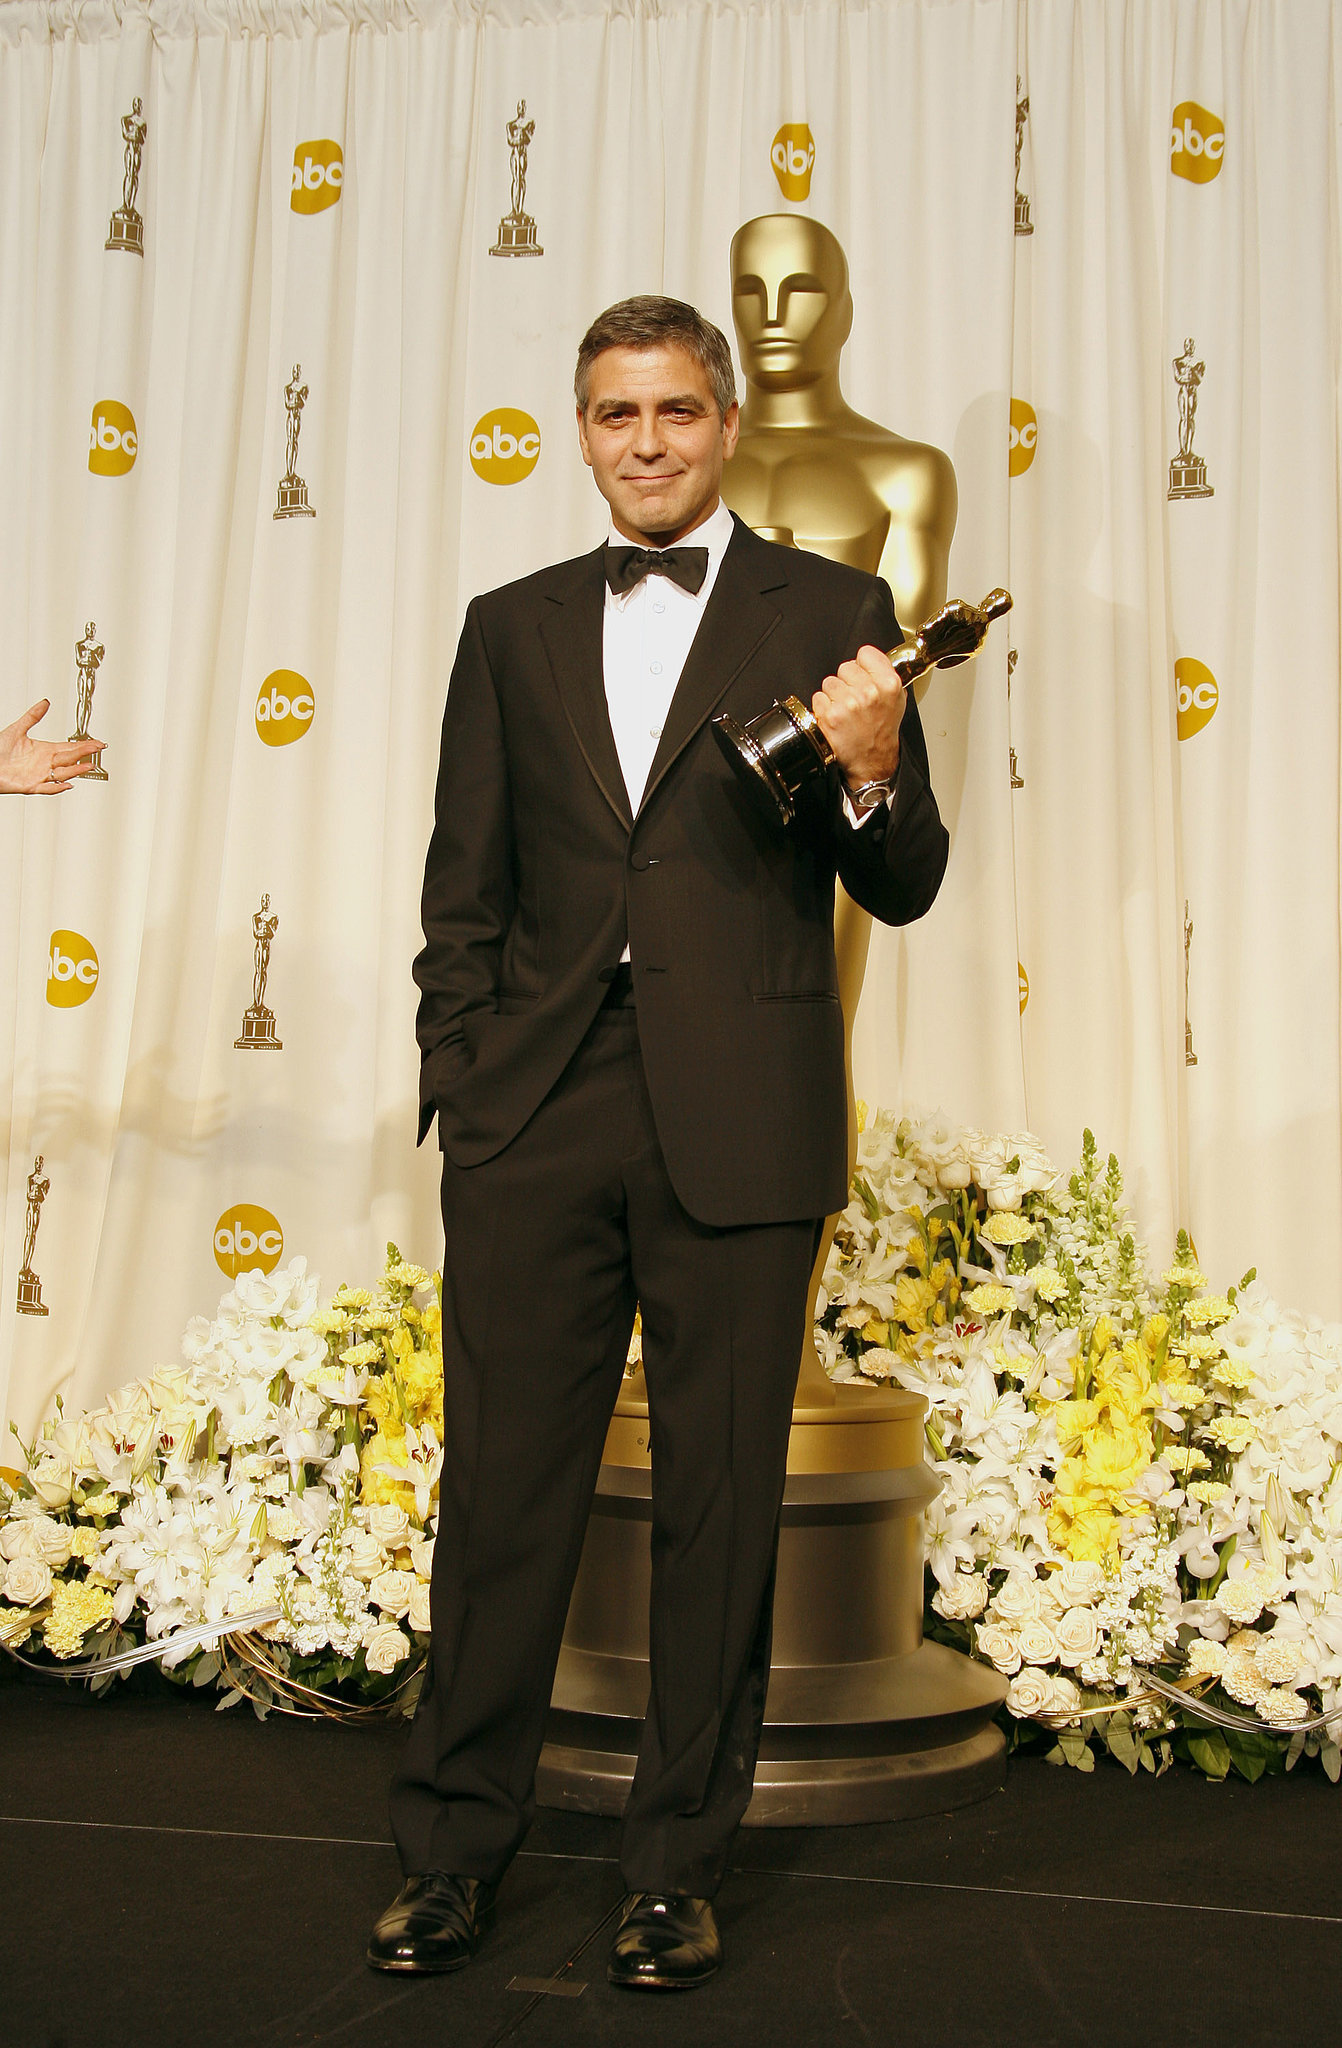 George Clooney at the 2006 Academy Awards